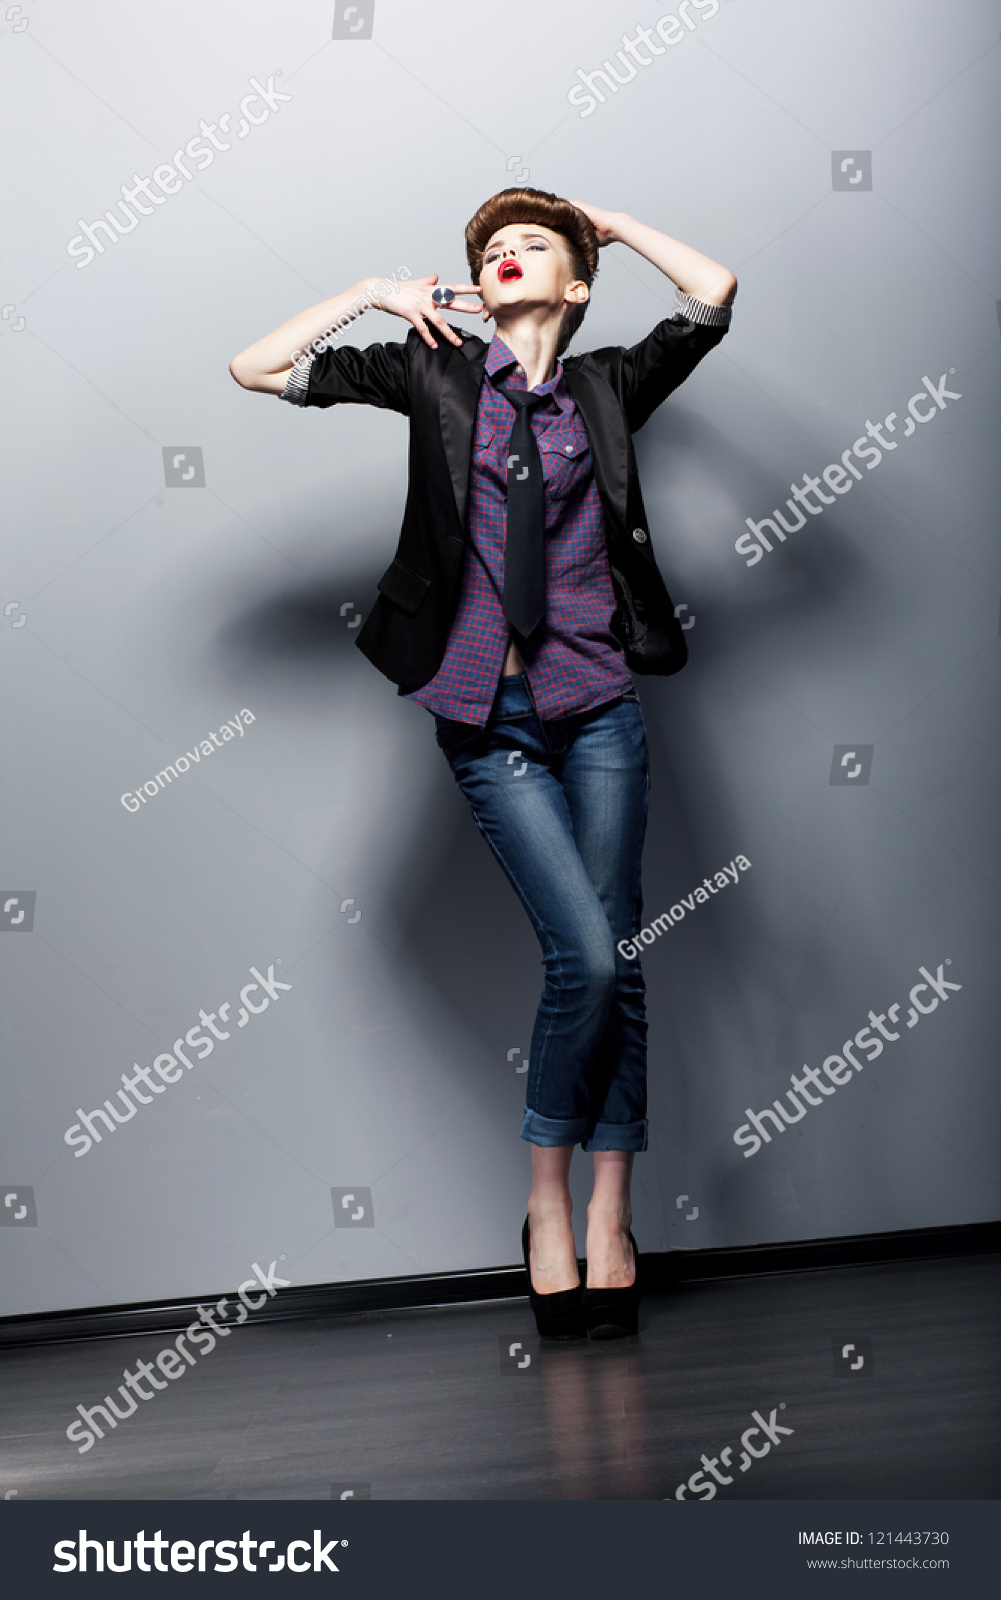 Retro Style Emotions Pin Up Fashion Girl Posing In Studio Glamor Stock Photo 121443730